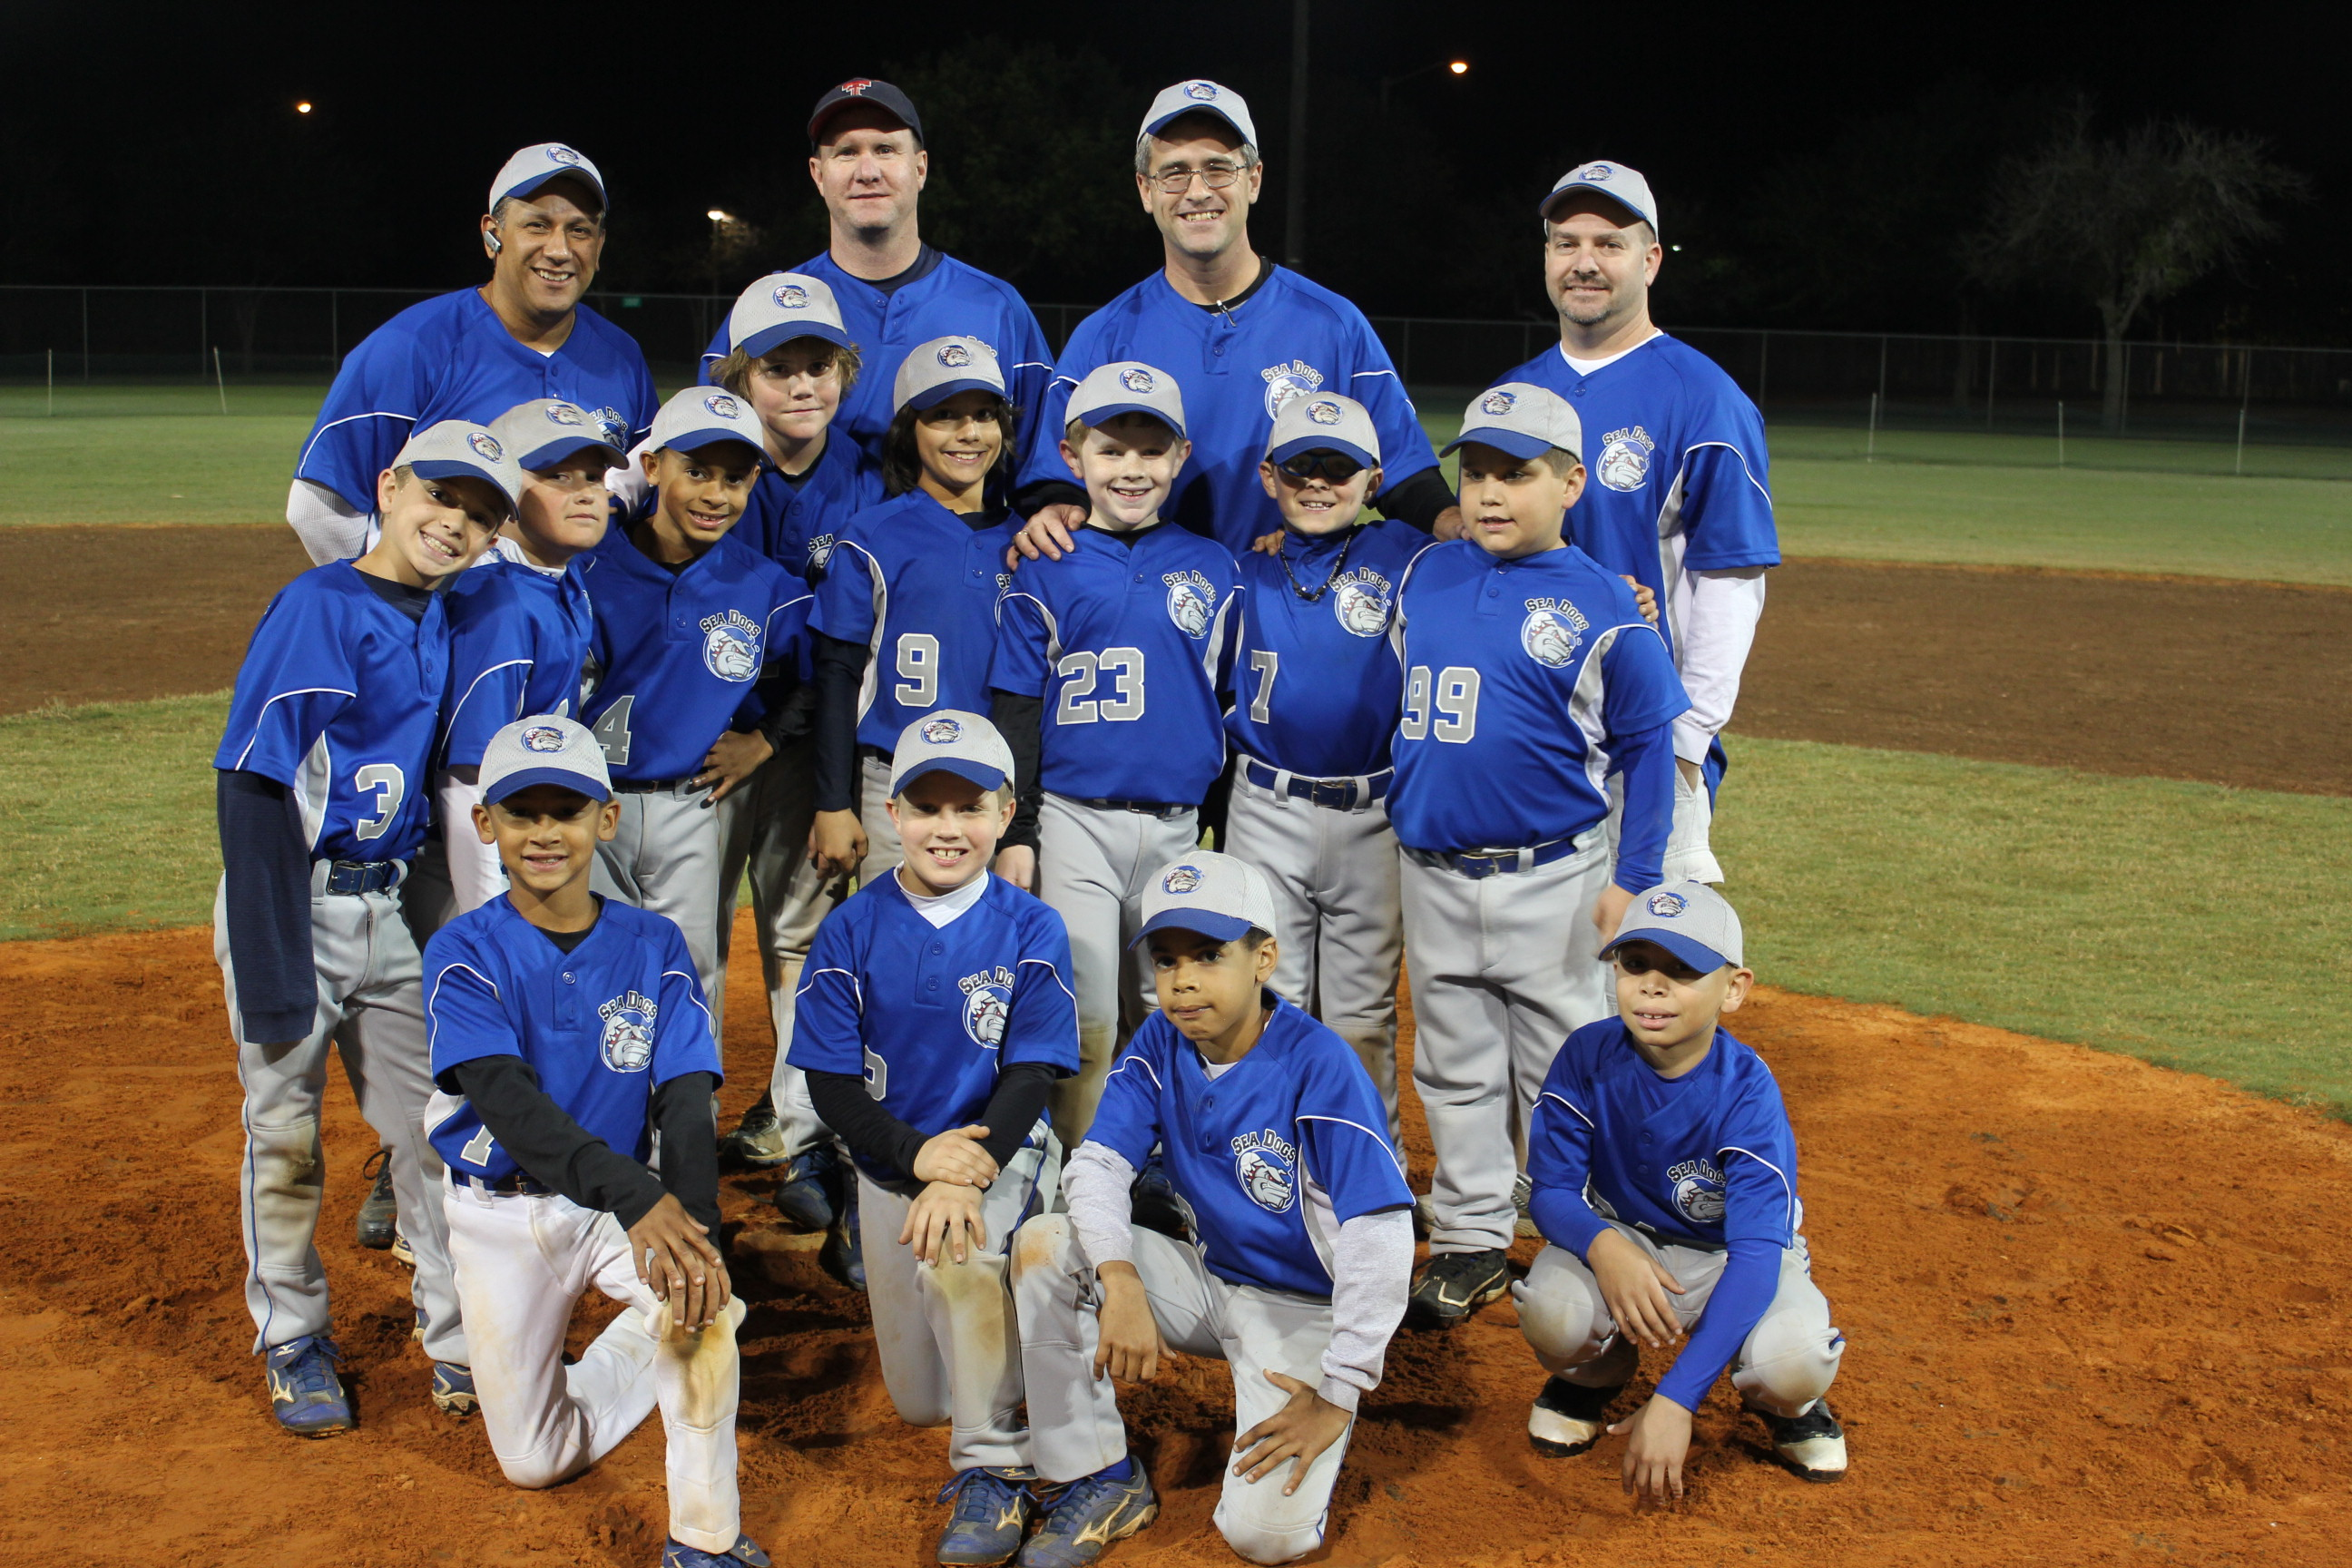 CORAL SPRINGS SEA DOGS -- CORAL SPRINGS, FLS